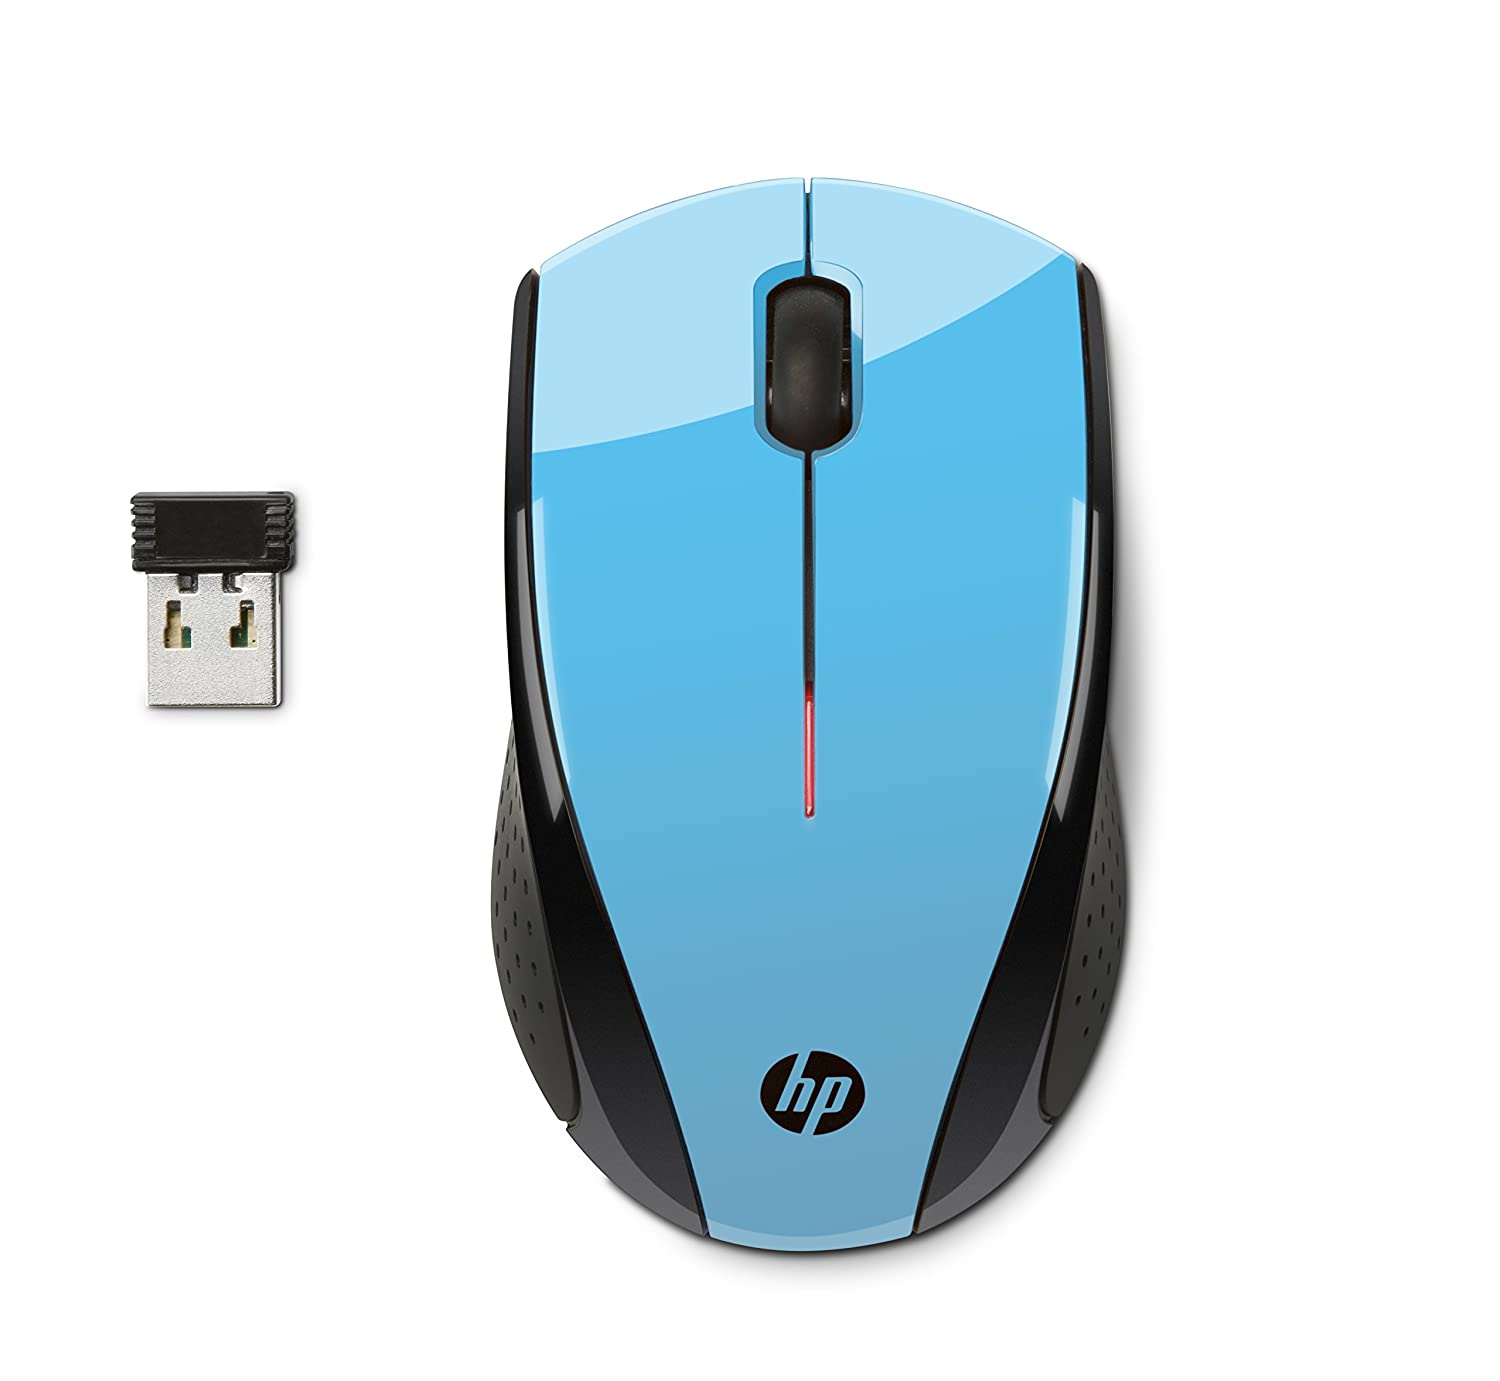 8 different hp wireless keyboards and mice on sale starting at 10 bgr. Black Bedroom Furniture Sets. Home Design Ideas